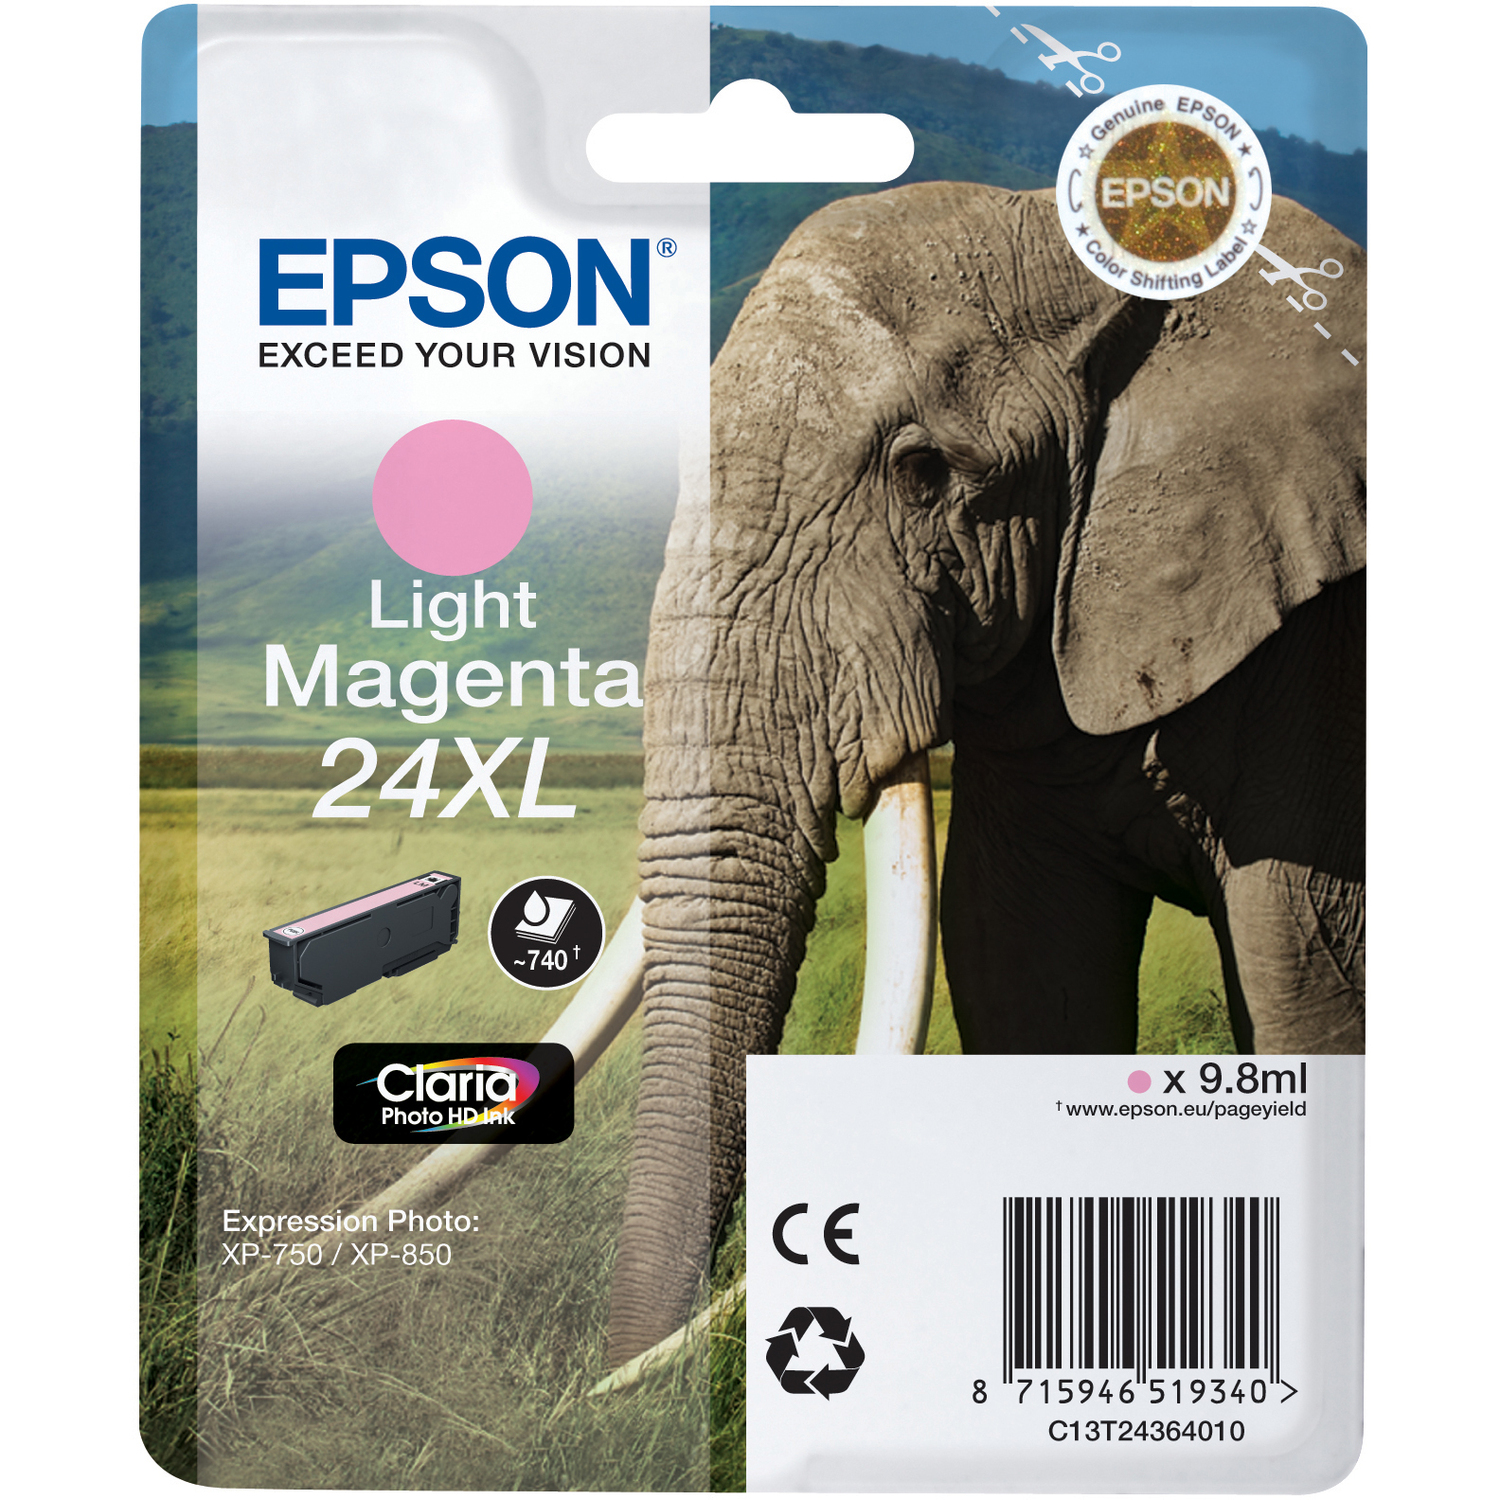 Epson Claria 24XL Ink Cartridge - Light Magenta